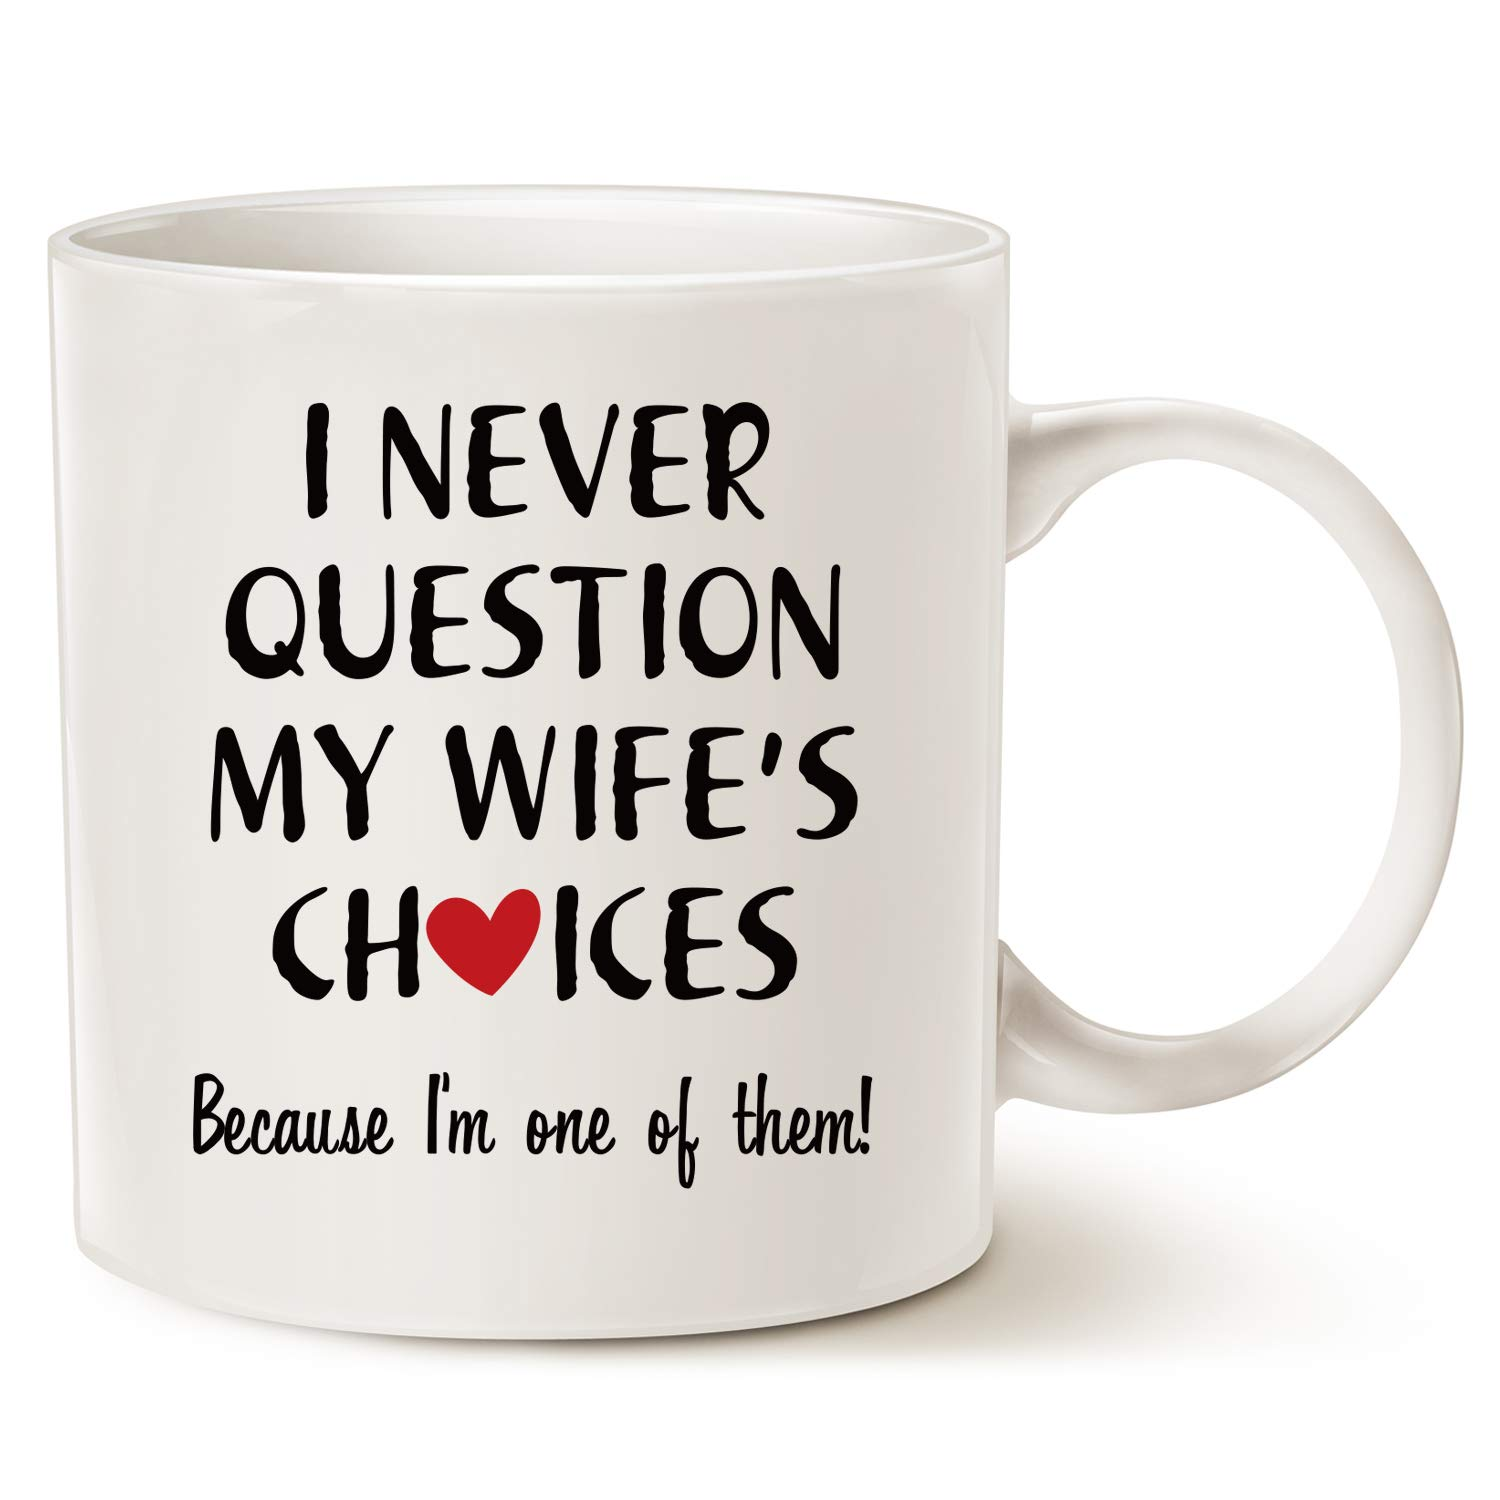 Wife Christmas Gifts.Mauag Christmas Gifts Funny Quote Coffee Mug For Husband Valentine S Day Gifts One Of My Wife S Choices Funny Cup White 11 Oz